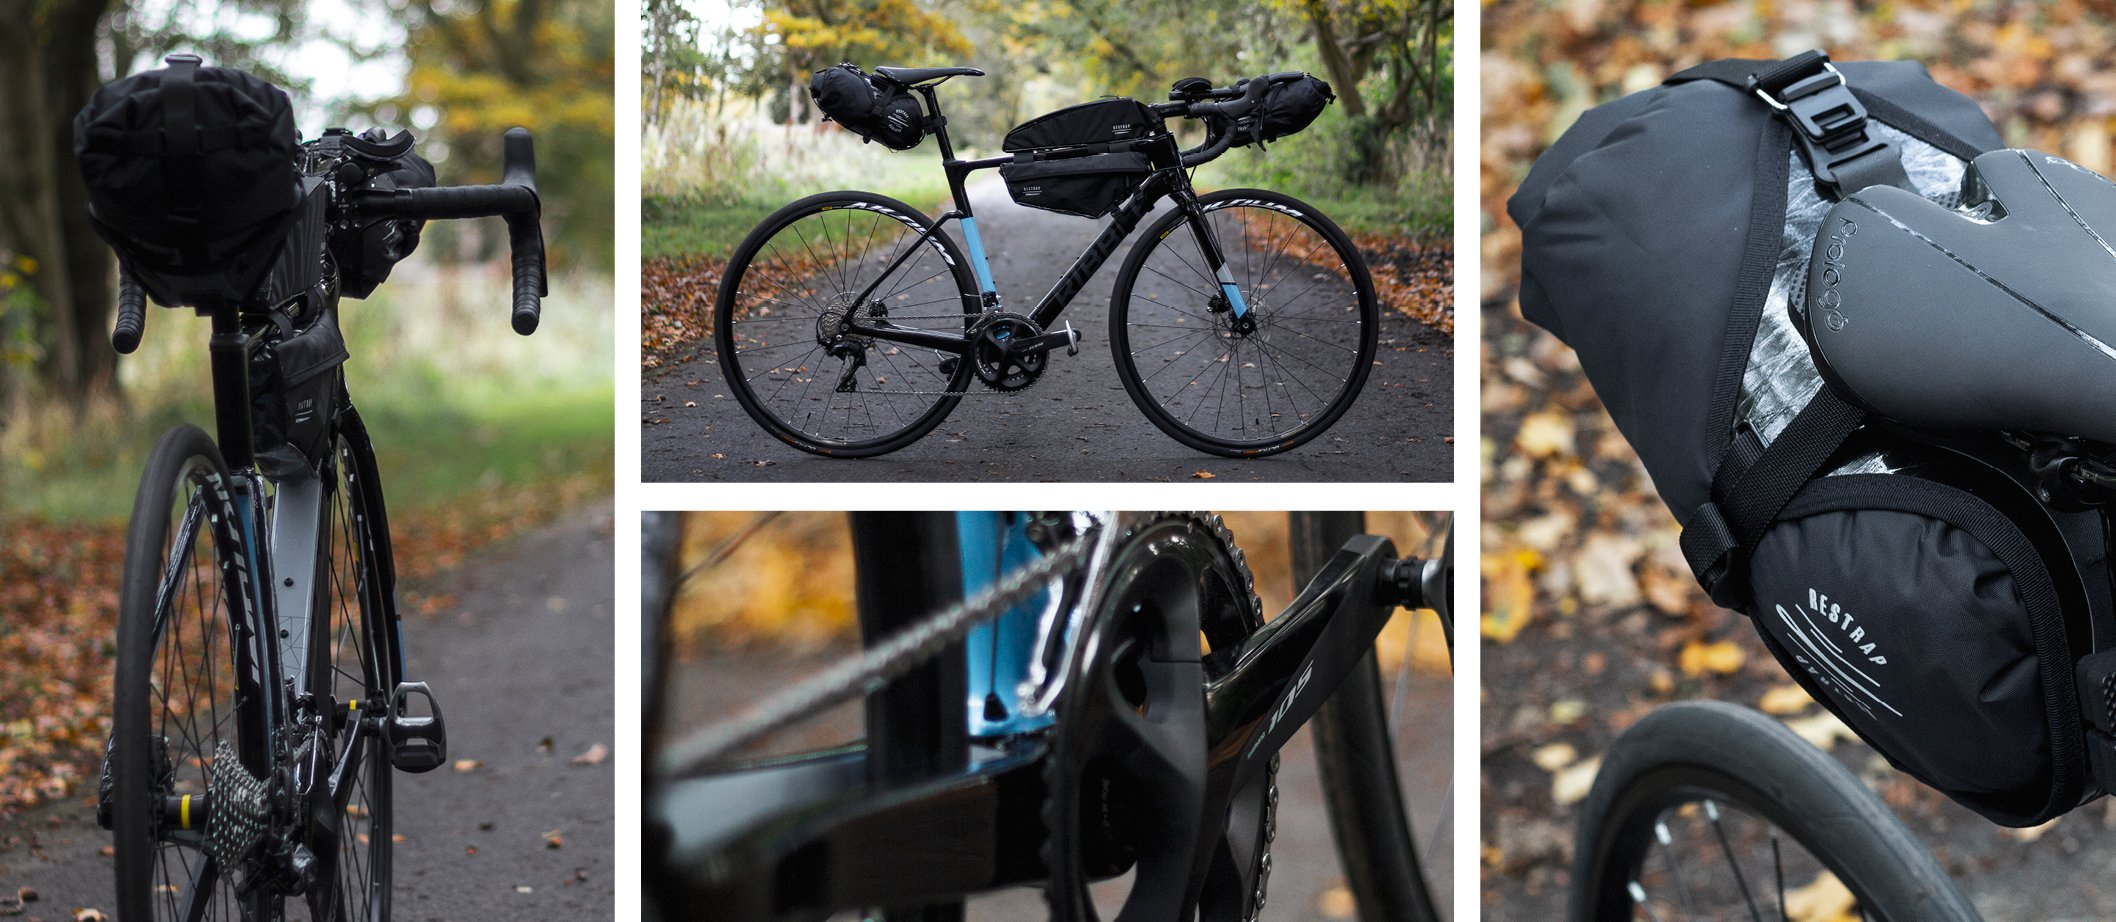 RIBBLE & RESTRAP ULTIMATE BIKEPACKING BUILD COMPETITION